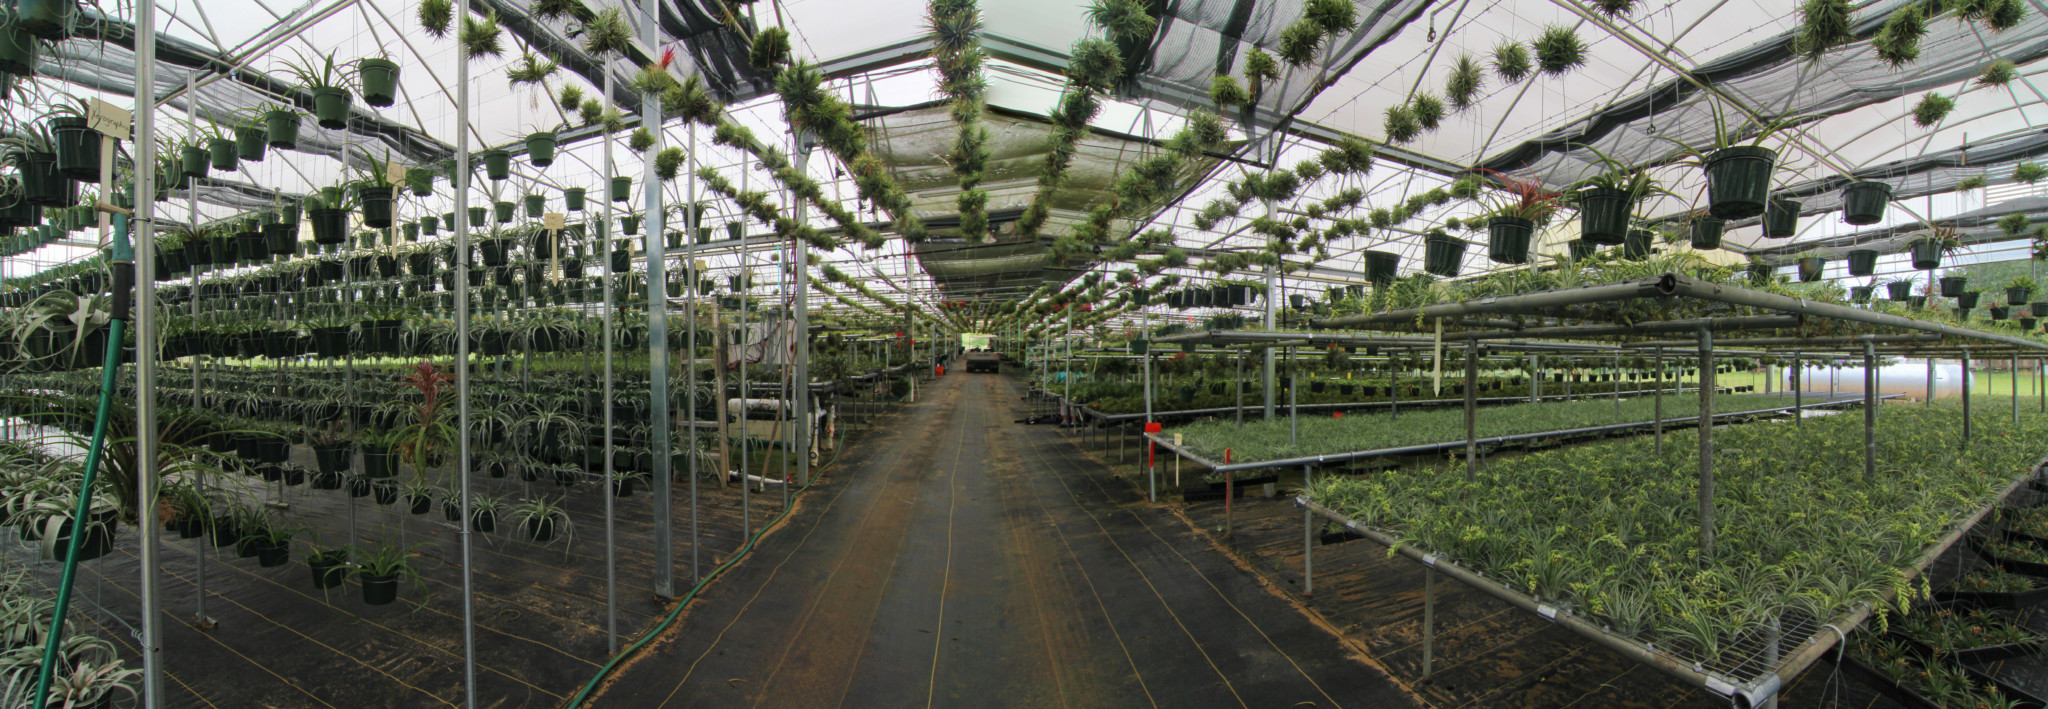 Russell's Bromeliads greenhouse